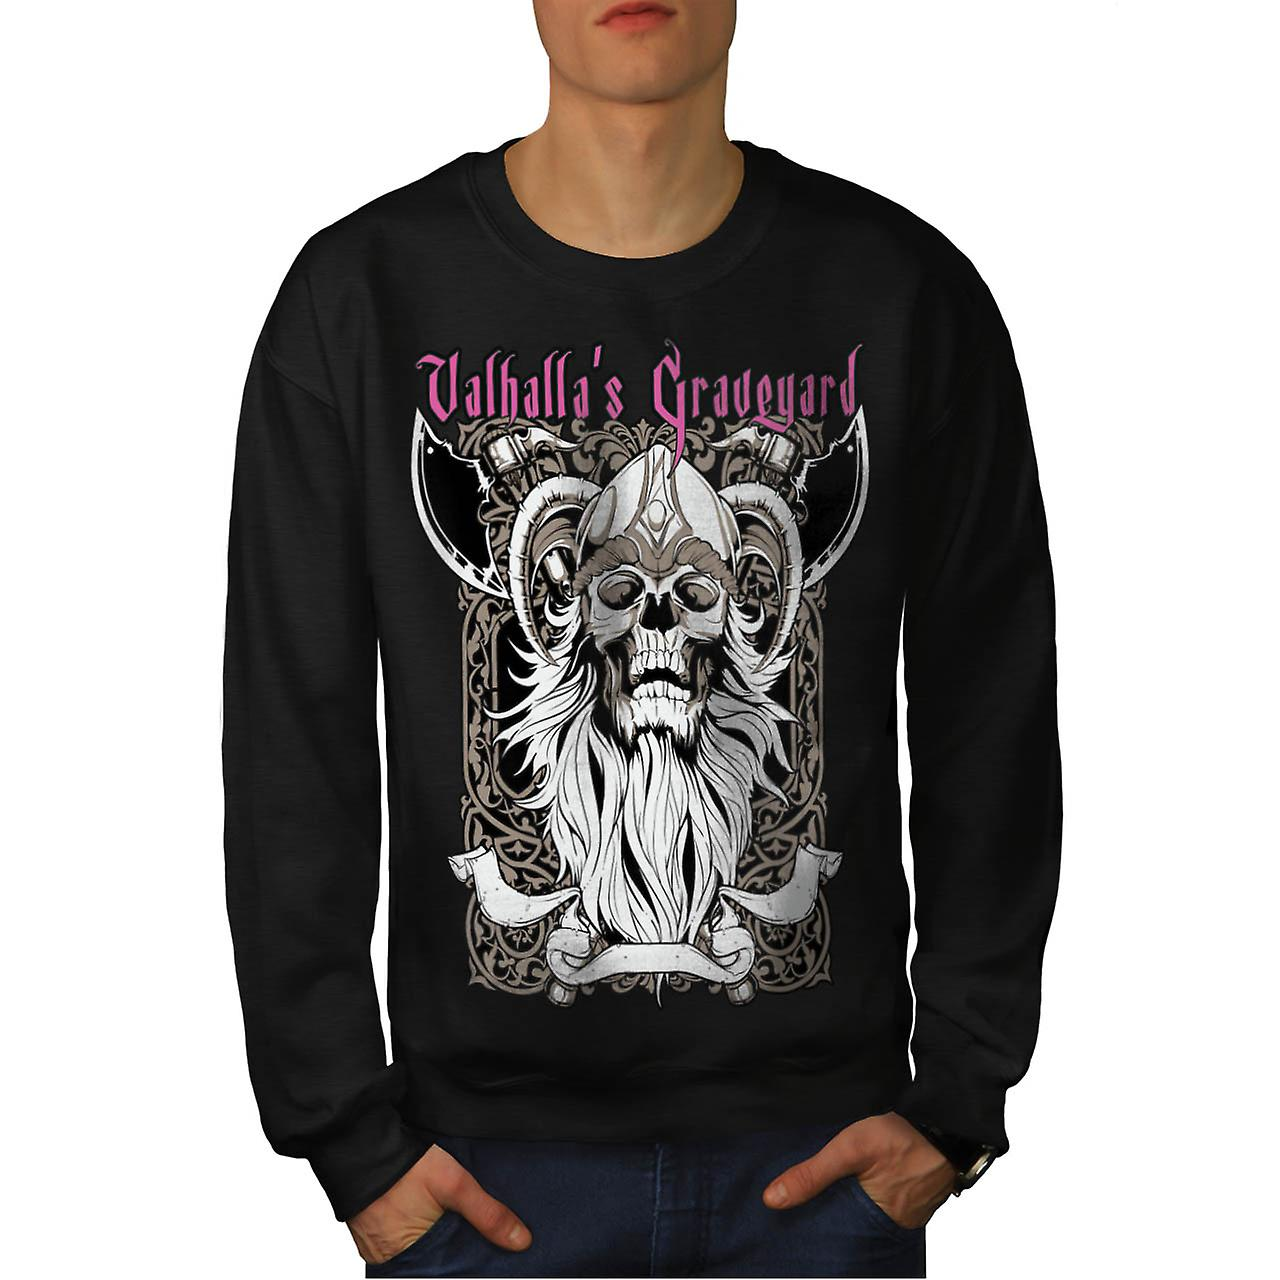 Valhalla Graveyard Men Black Sweatshirt | Wellcoda